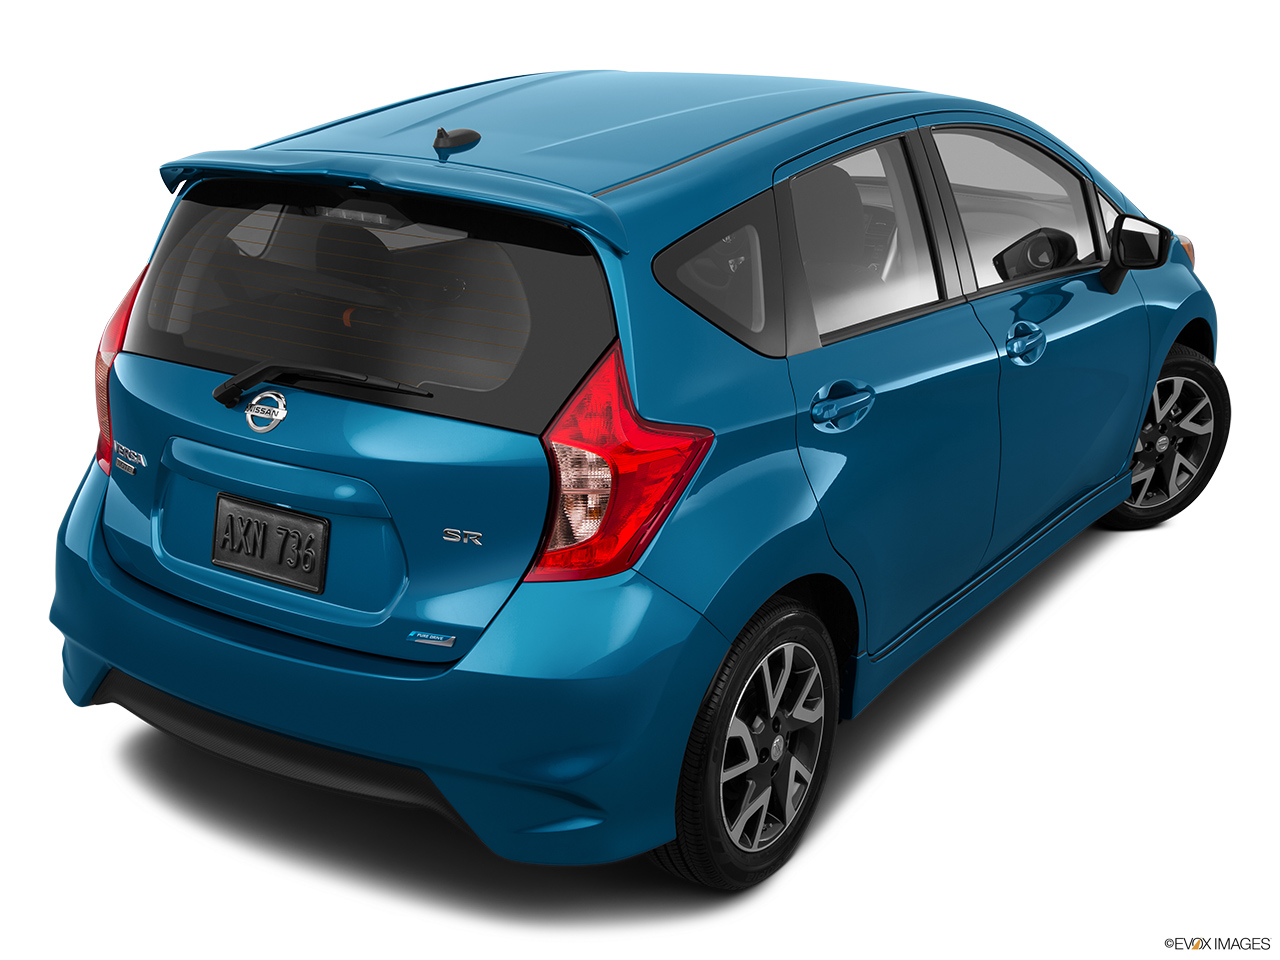 nissan versa s hatchback. Black Bedroom Furniture Sets. Home Design Ideas